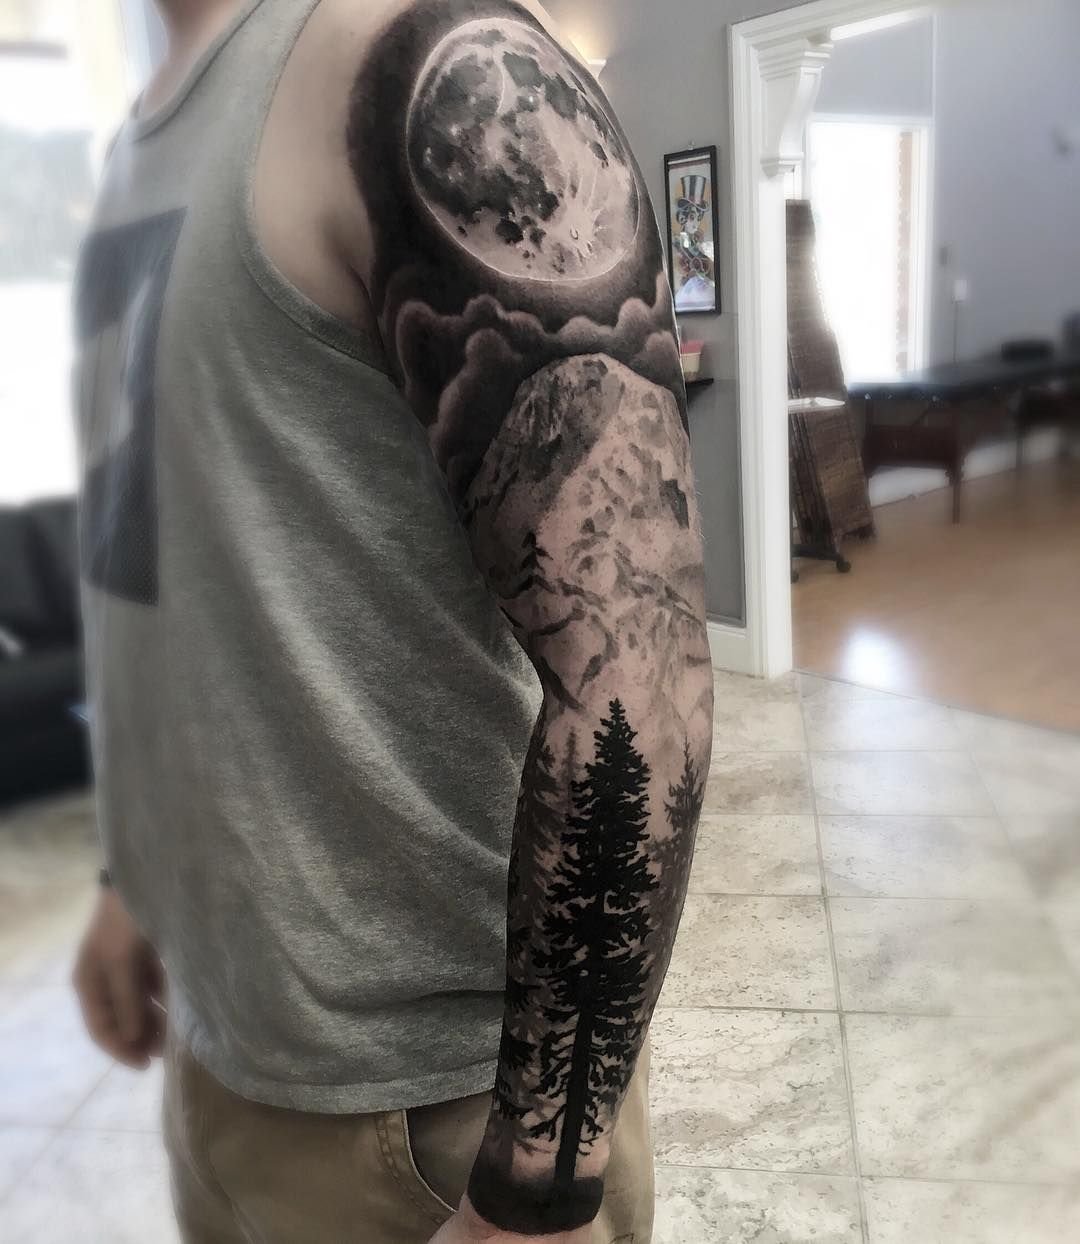 13b83b23d Black and grey realism moon night sky mountain forest trees sleeve tattoo,  by Aaron Carey